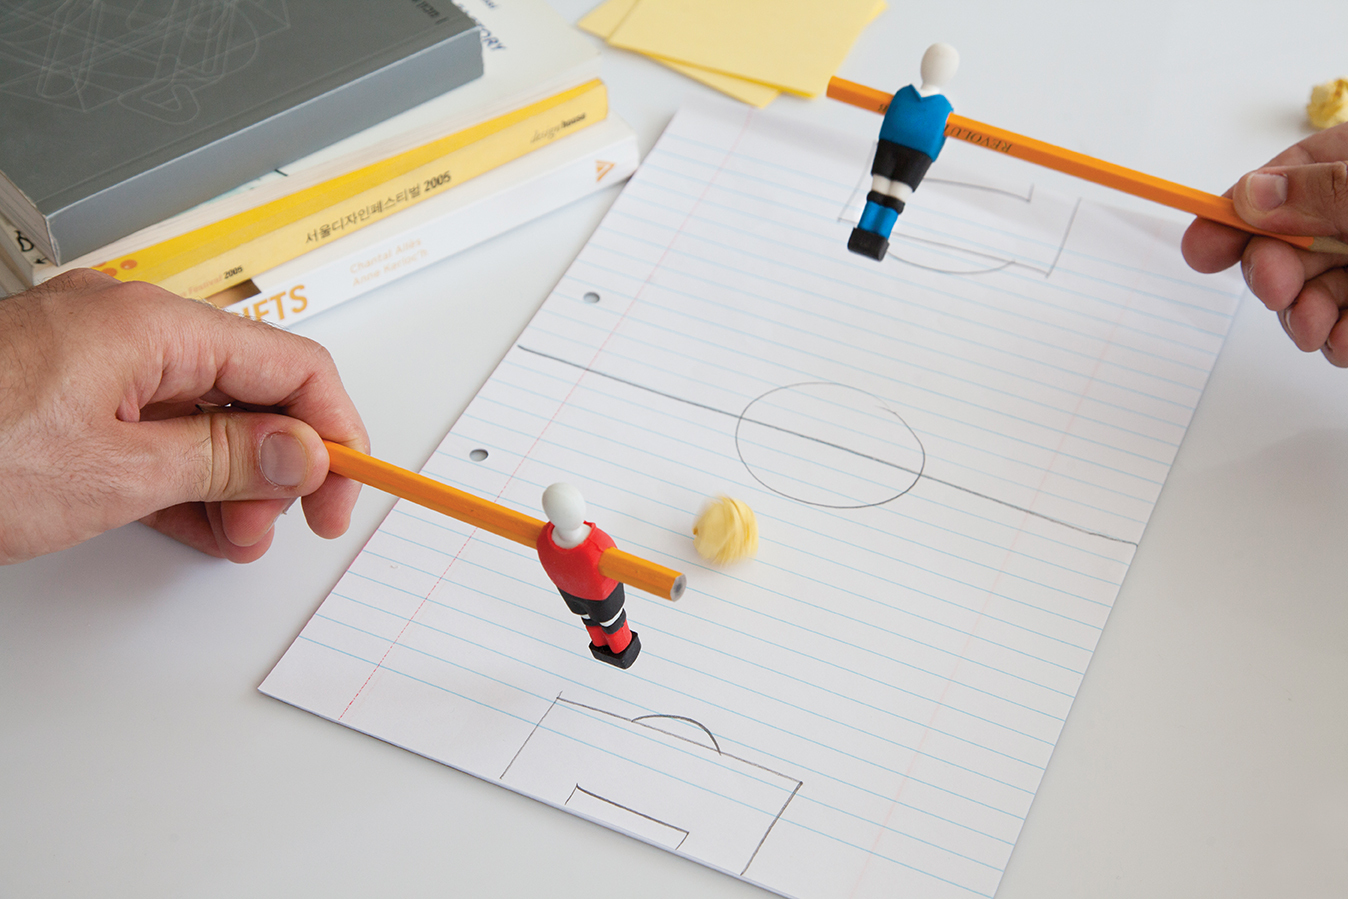 Kids funky gifts penball football erasers x 2 design table for Funky household gifts